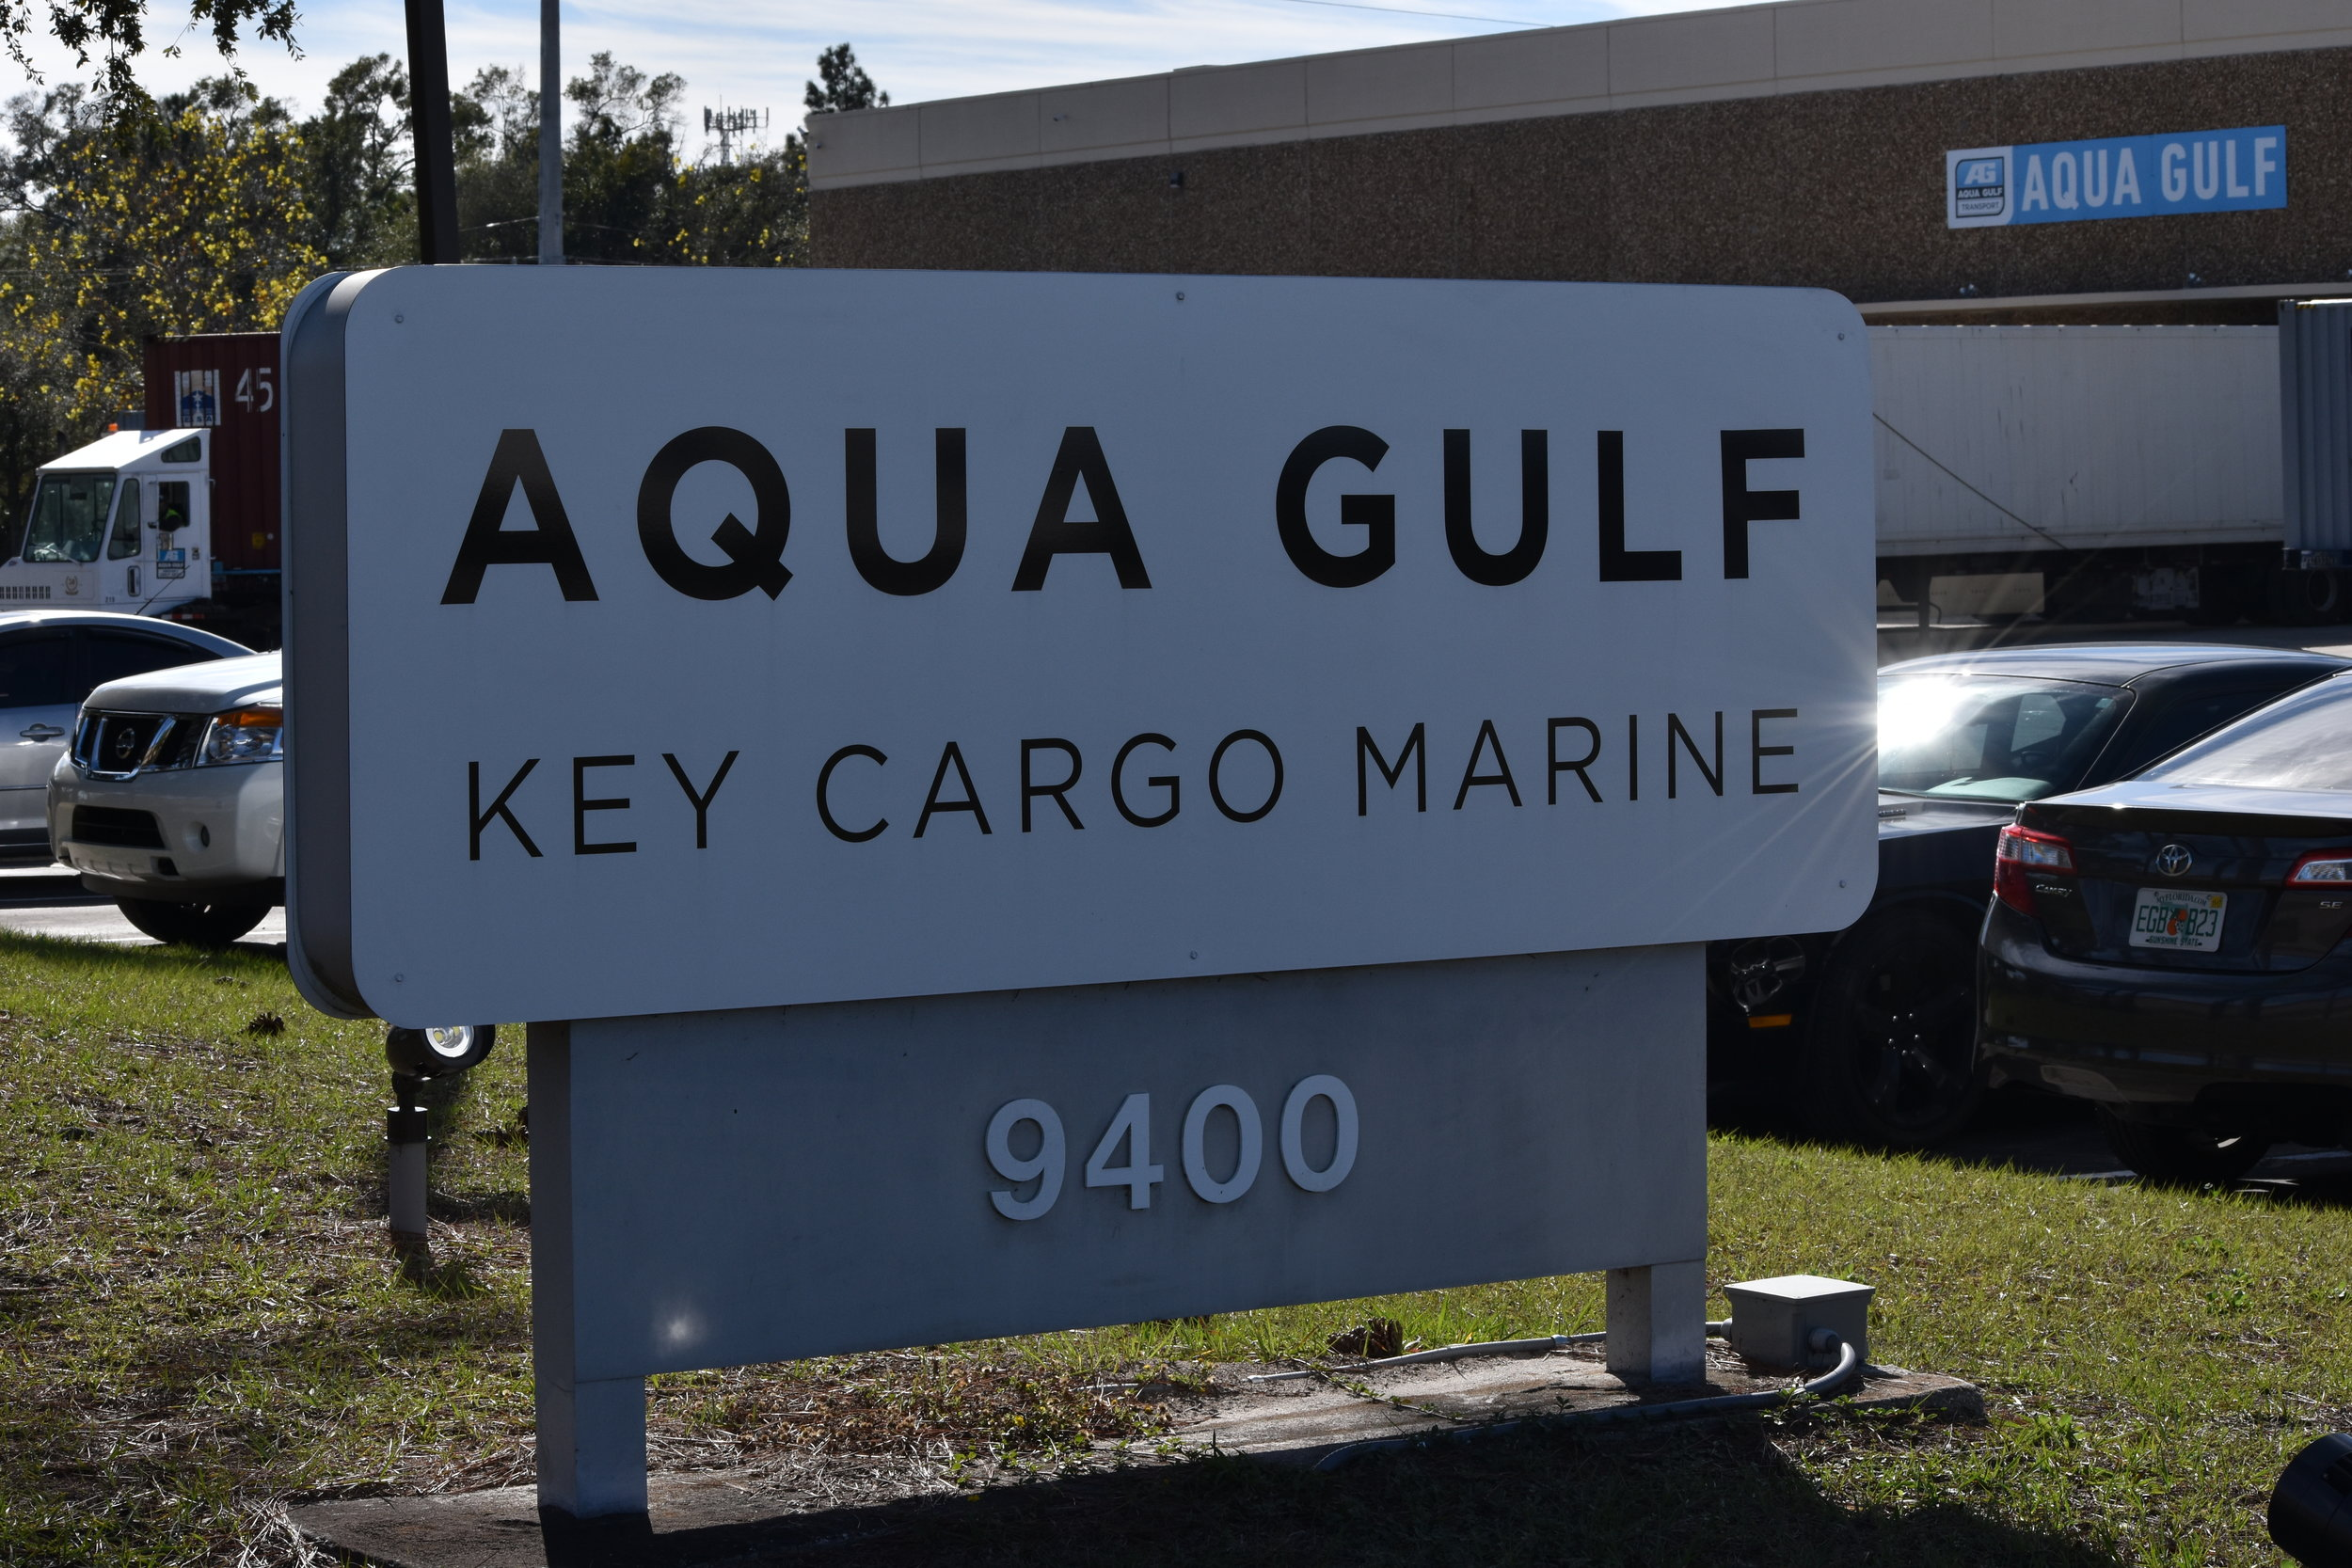 YOU ASK, AQUA GULF DELIVERS!